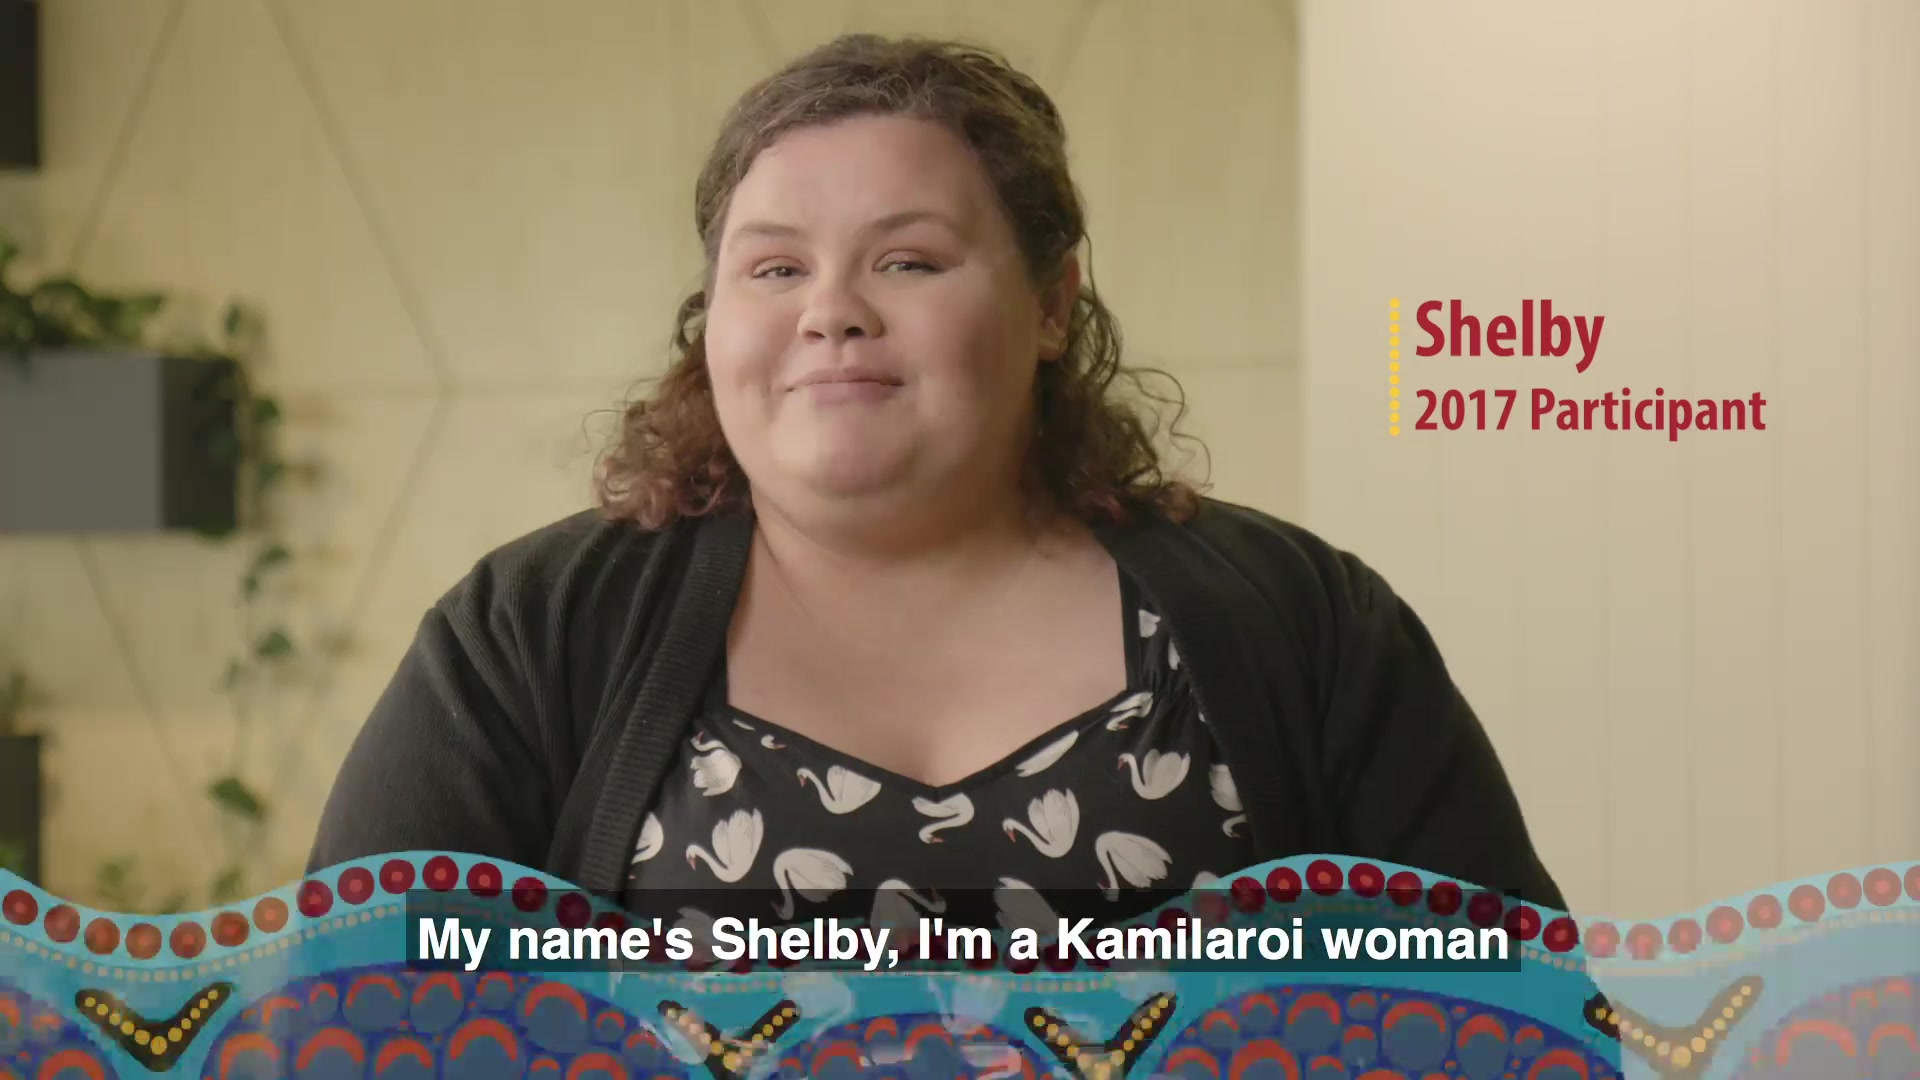 Watch Shelby's Story